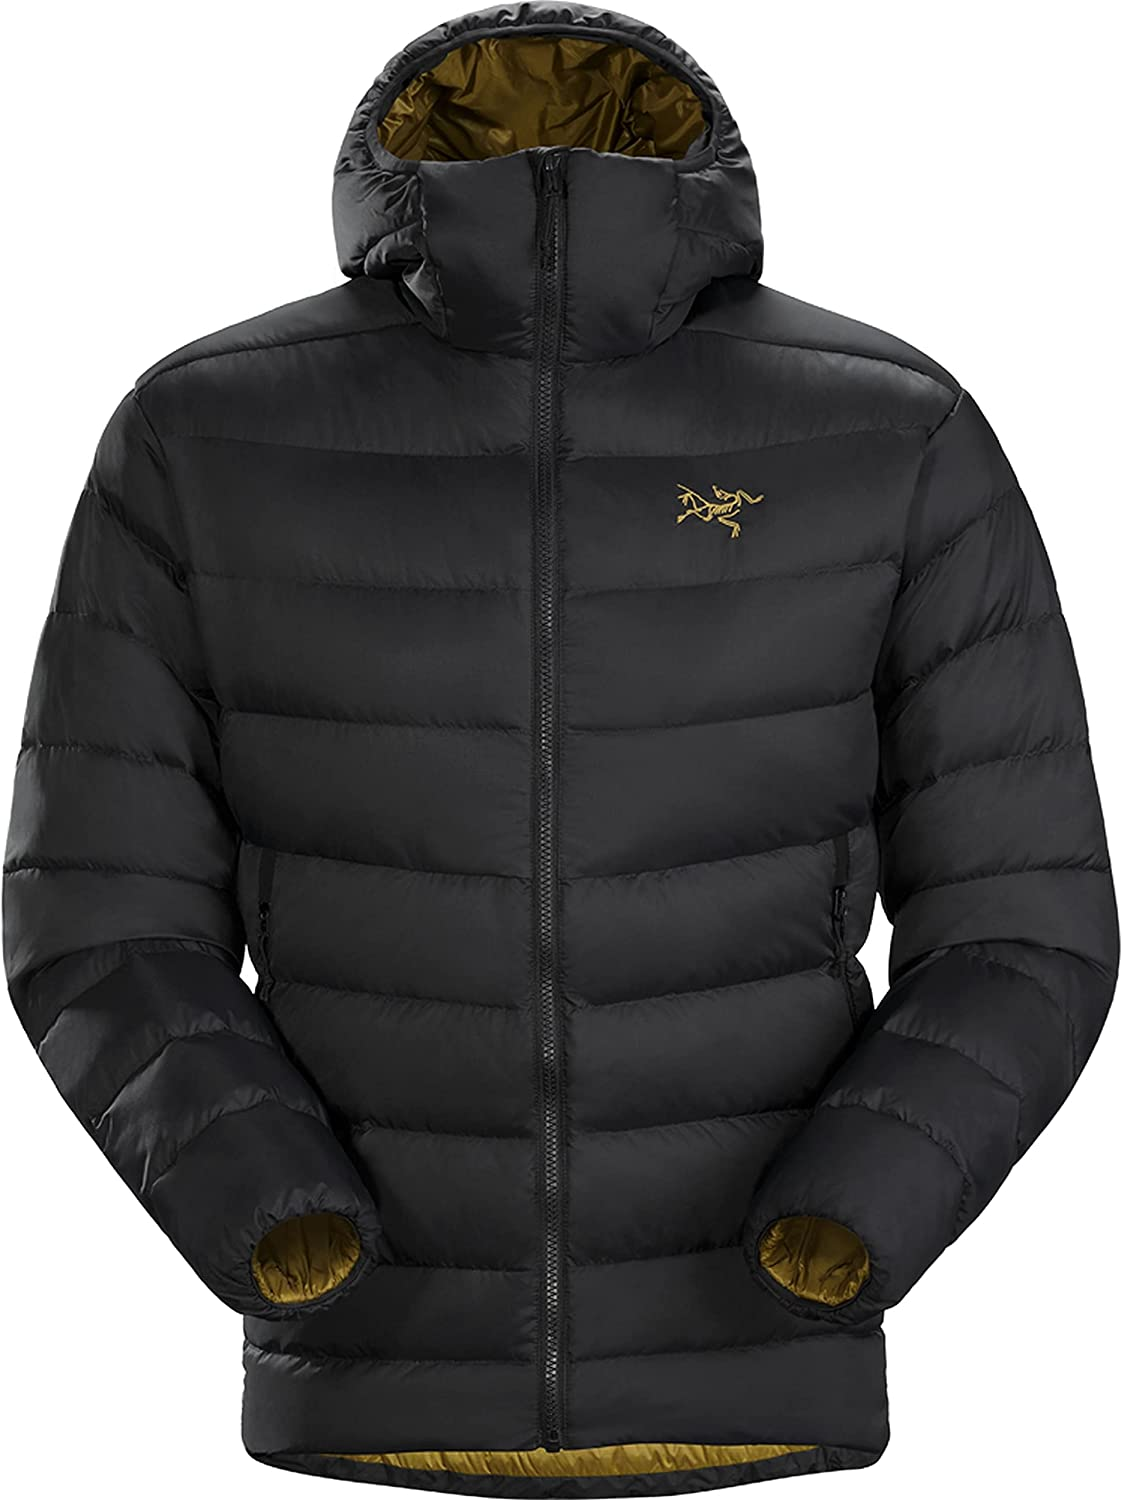 Arc'teryx Thorium AR Hoody Men's | All Round, Down Insulated Hoody for Cold Dry Weather.